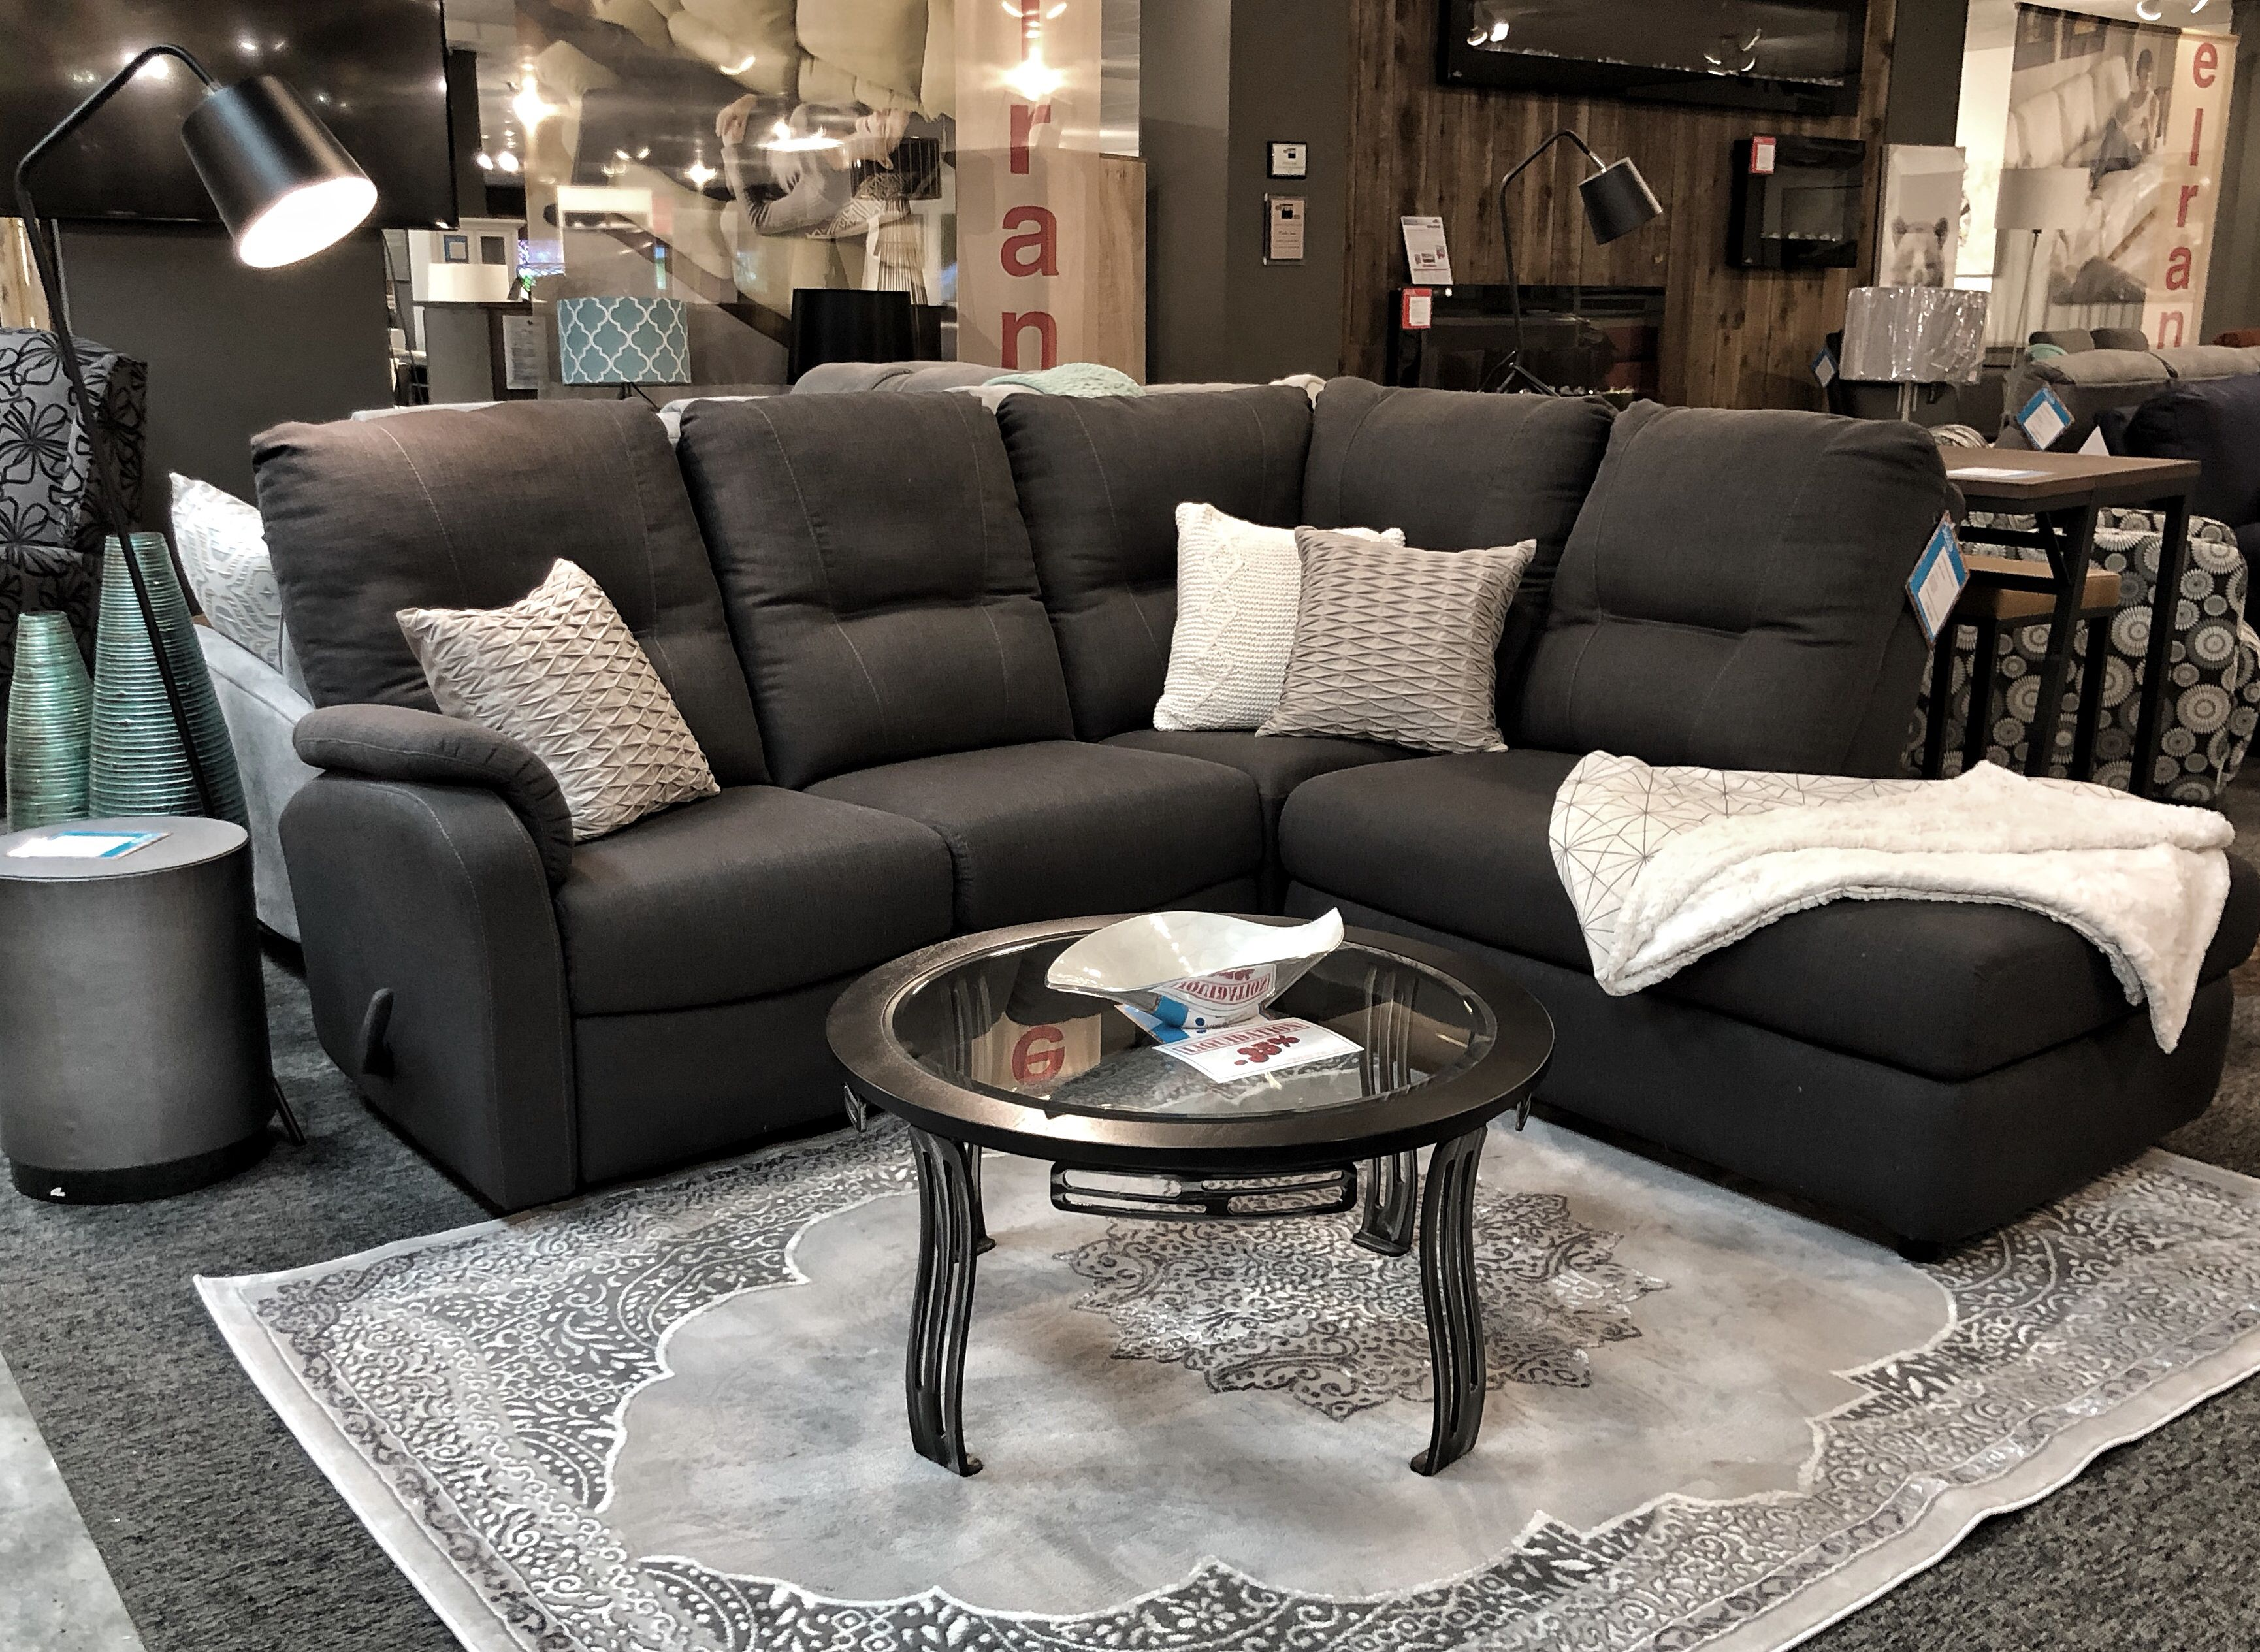 Elran Furniture Furniture Sectional Couch Home Decor